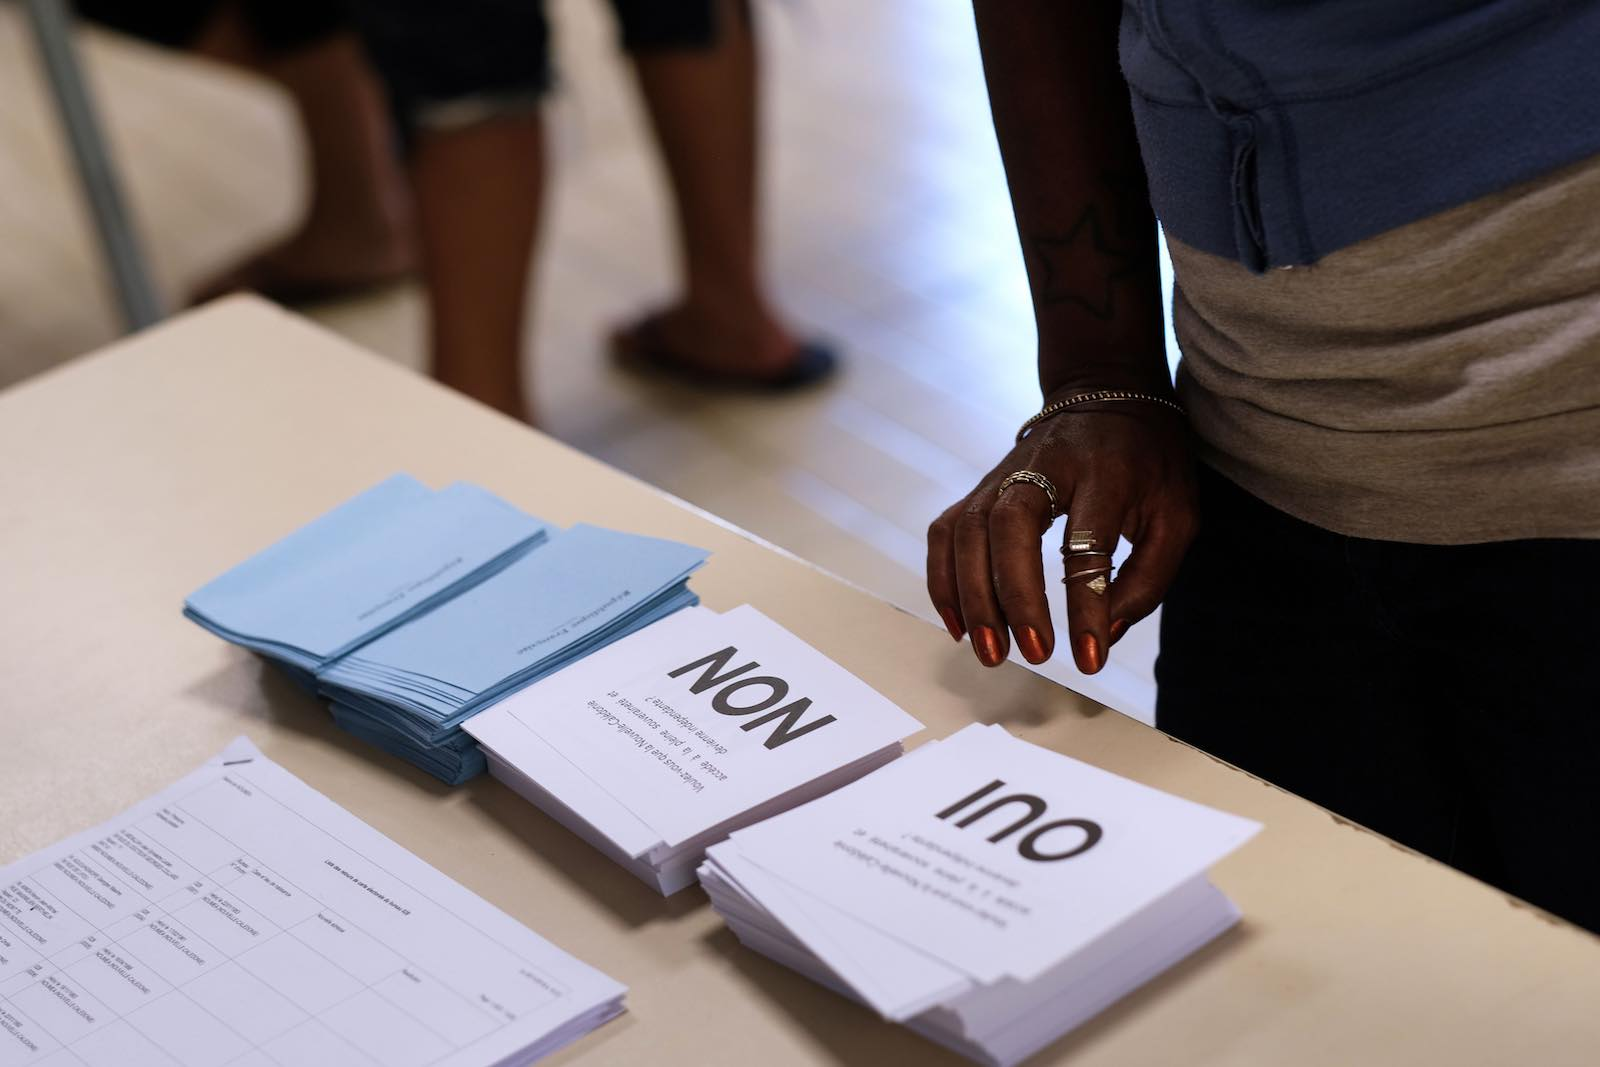 Ballot papers in the 2018 referendum on New Caledonia's independence from France – with another vote now anticipated for 2020 (Photo: Theo Rouby/AFP/Getty Images)